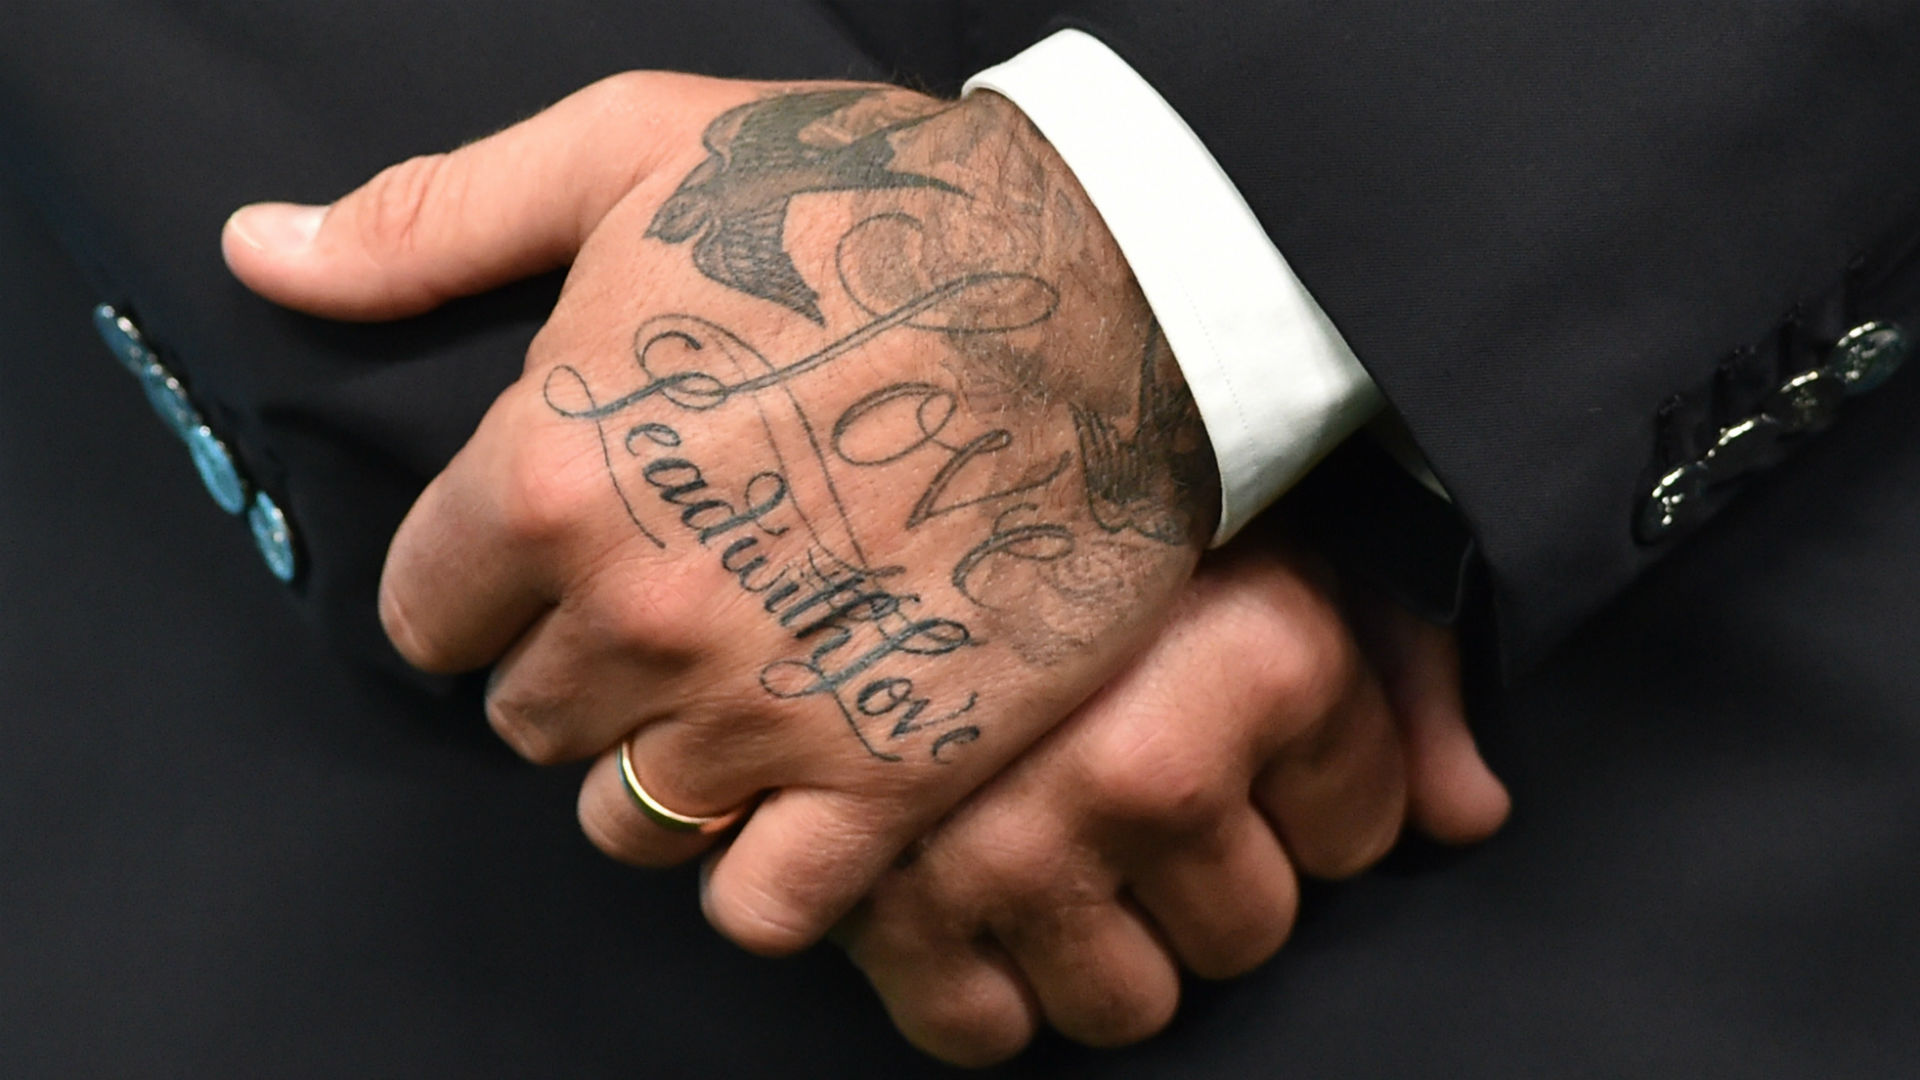 David Beckham S Tattoos Where Are They And What Do They Mean